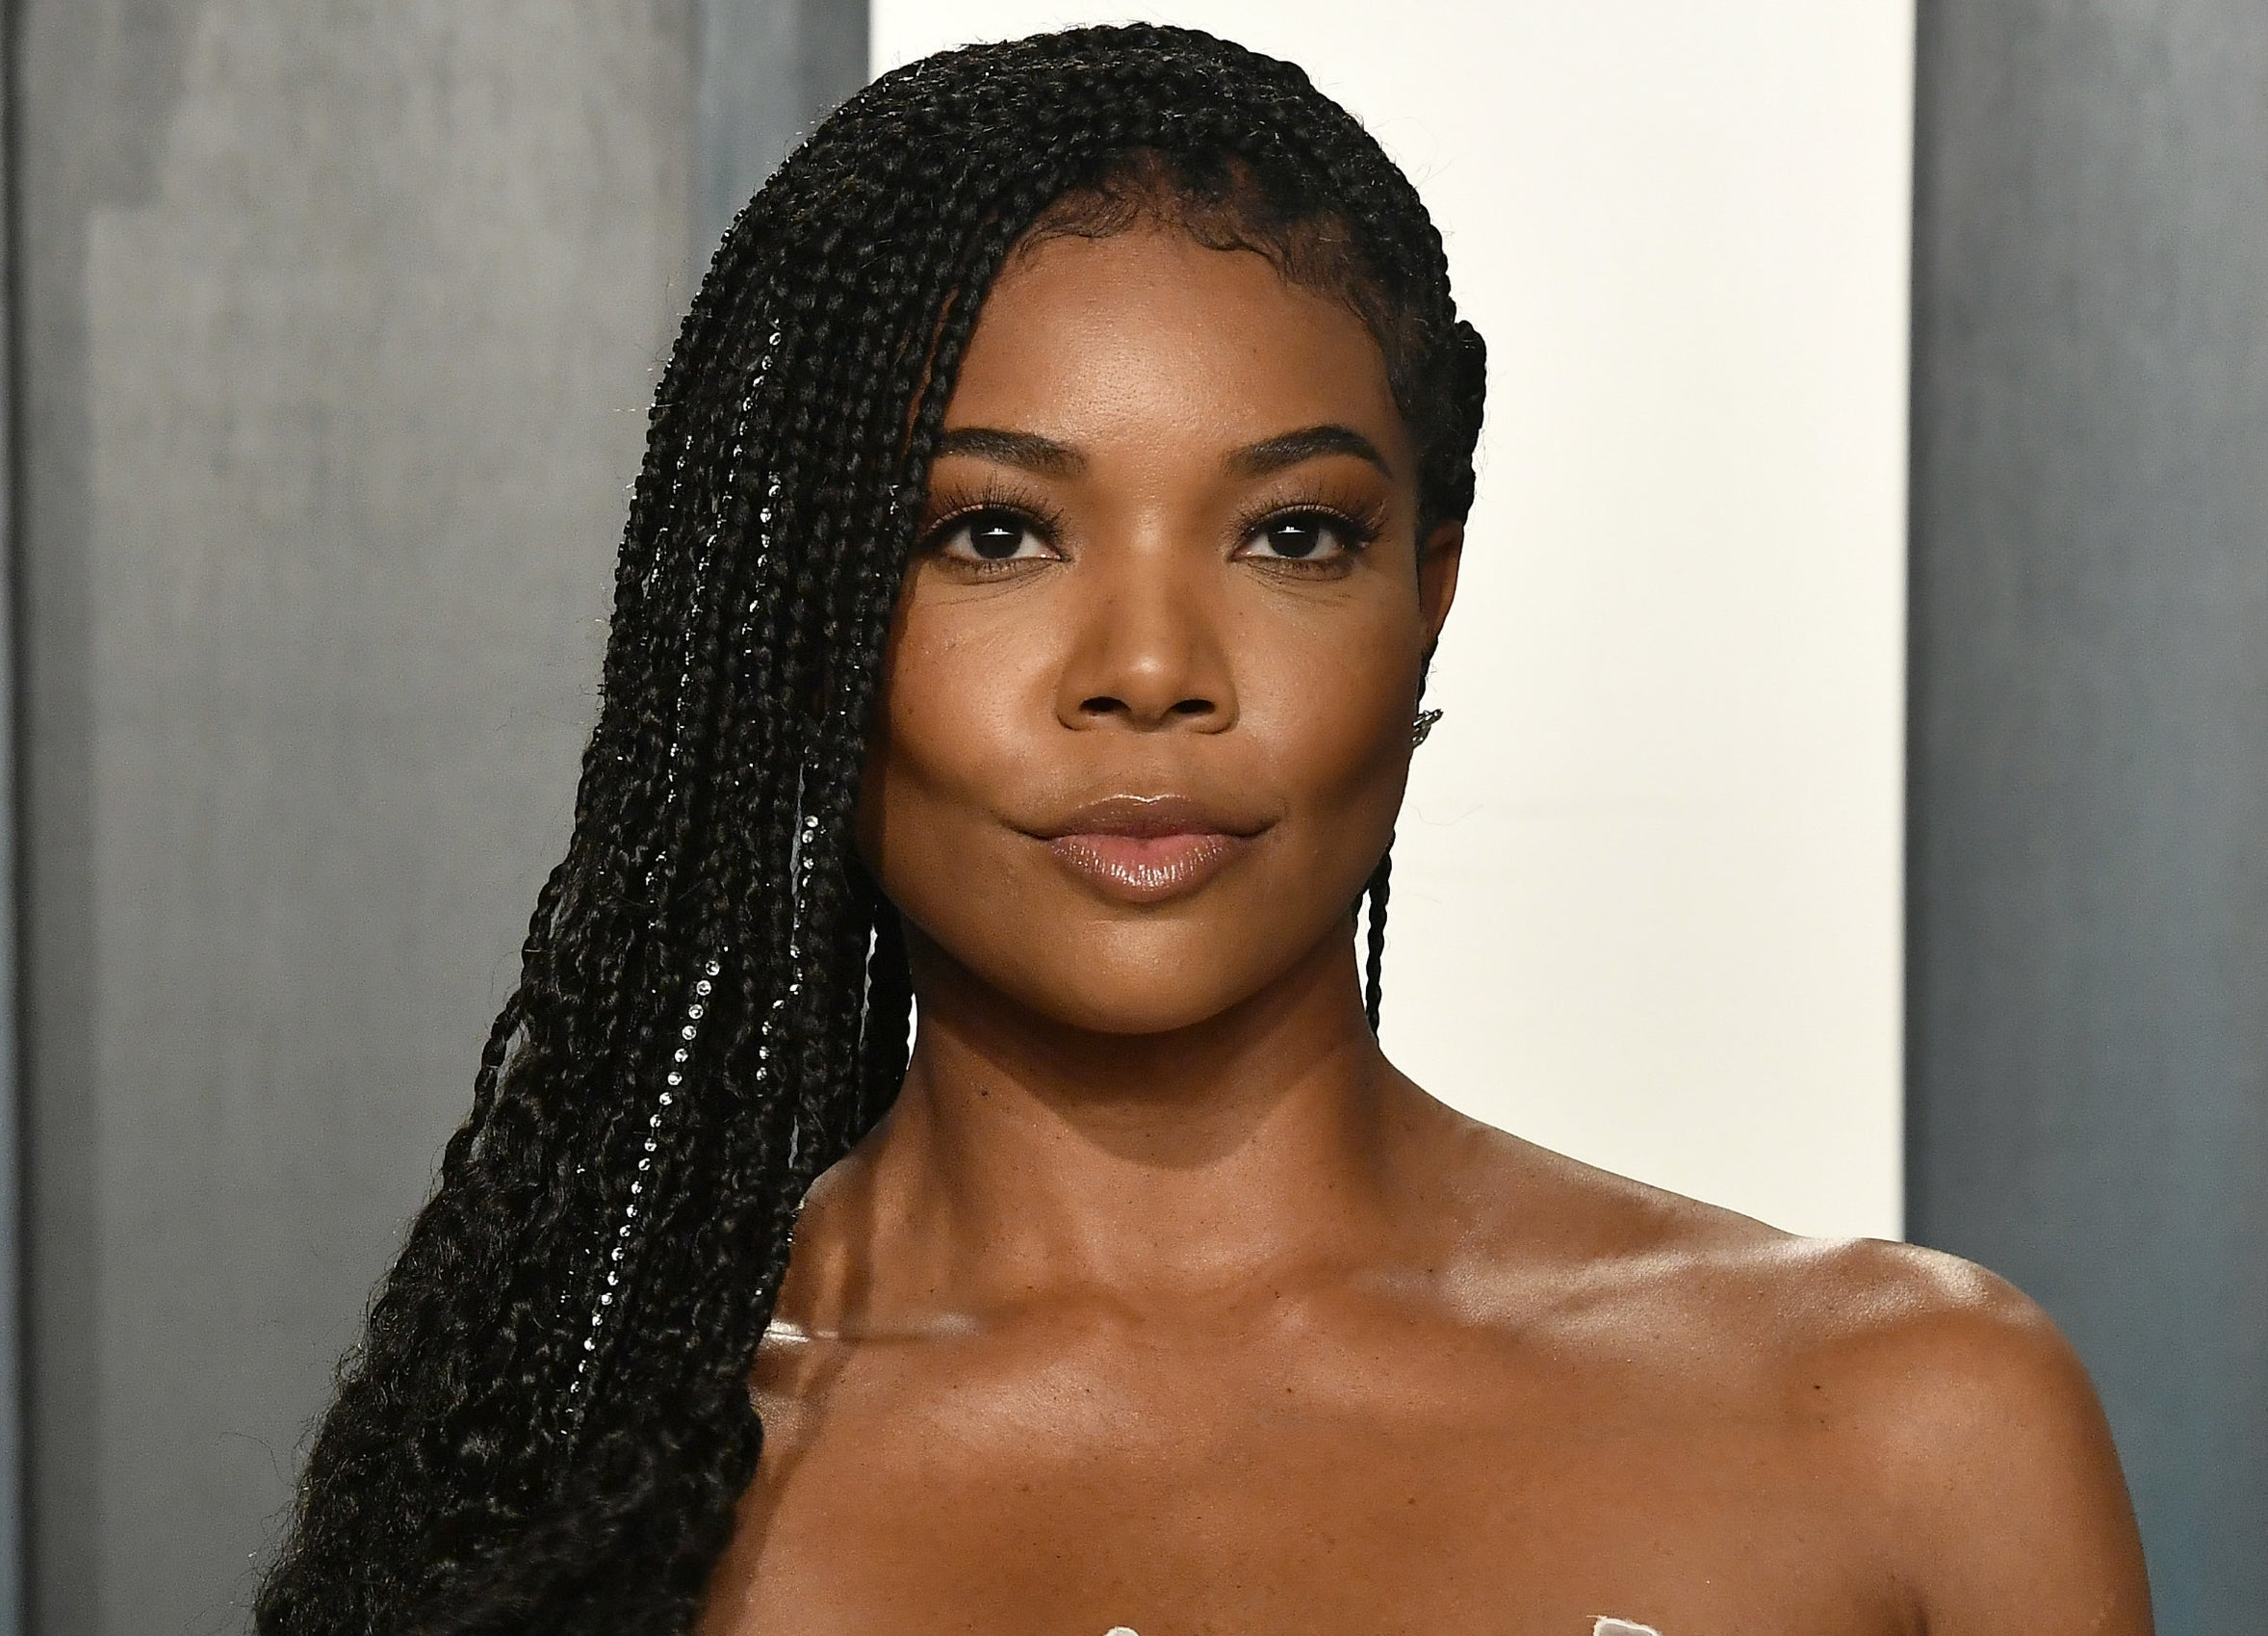 A close up of Gabrielle at an event with her braided hair pushed to one side